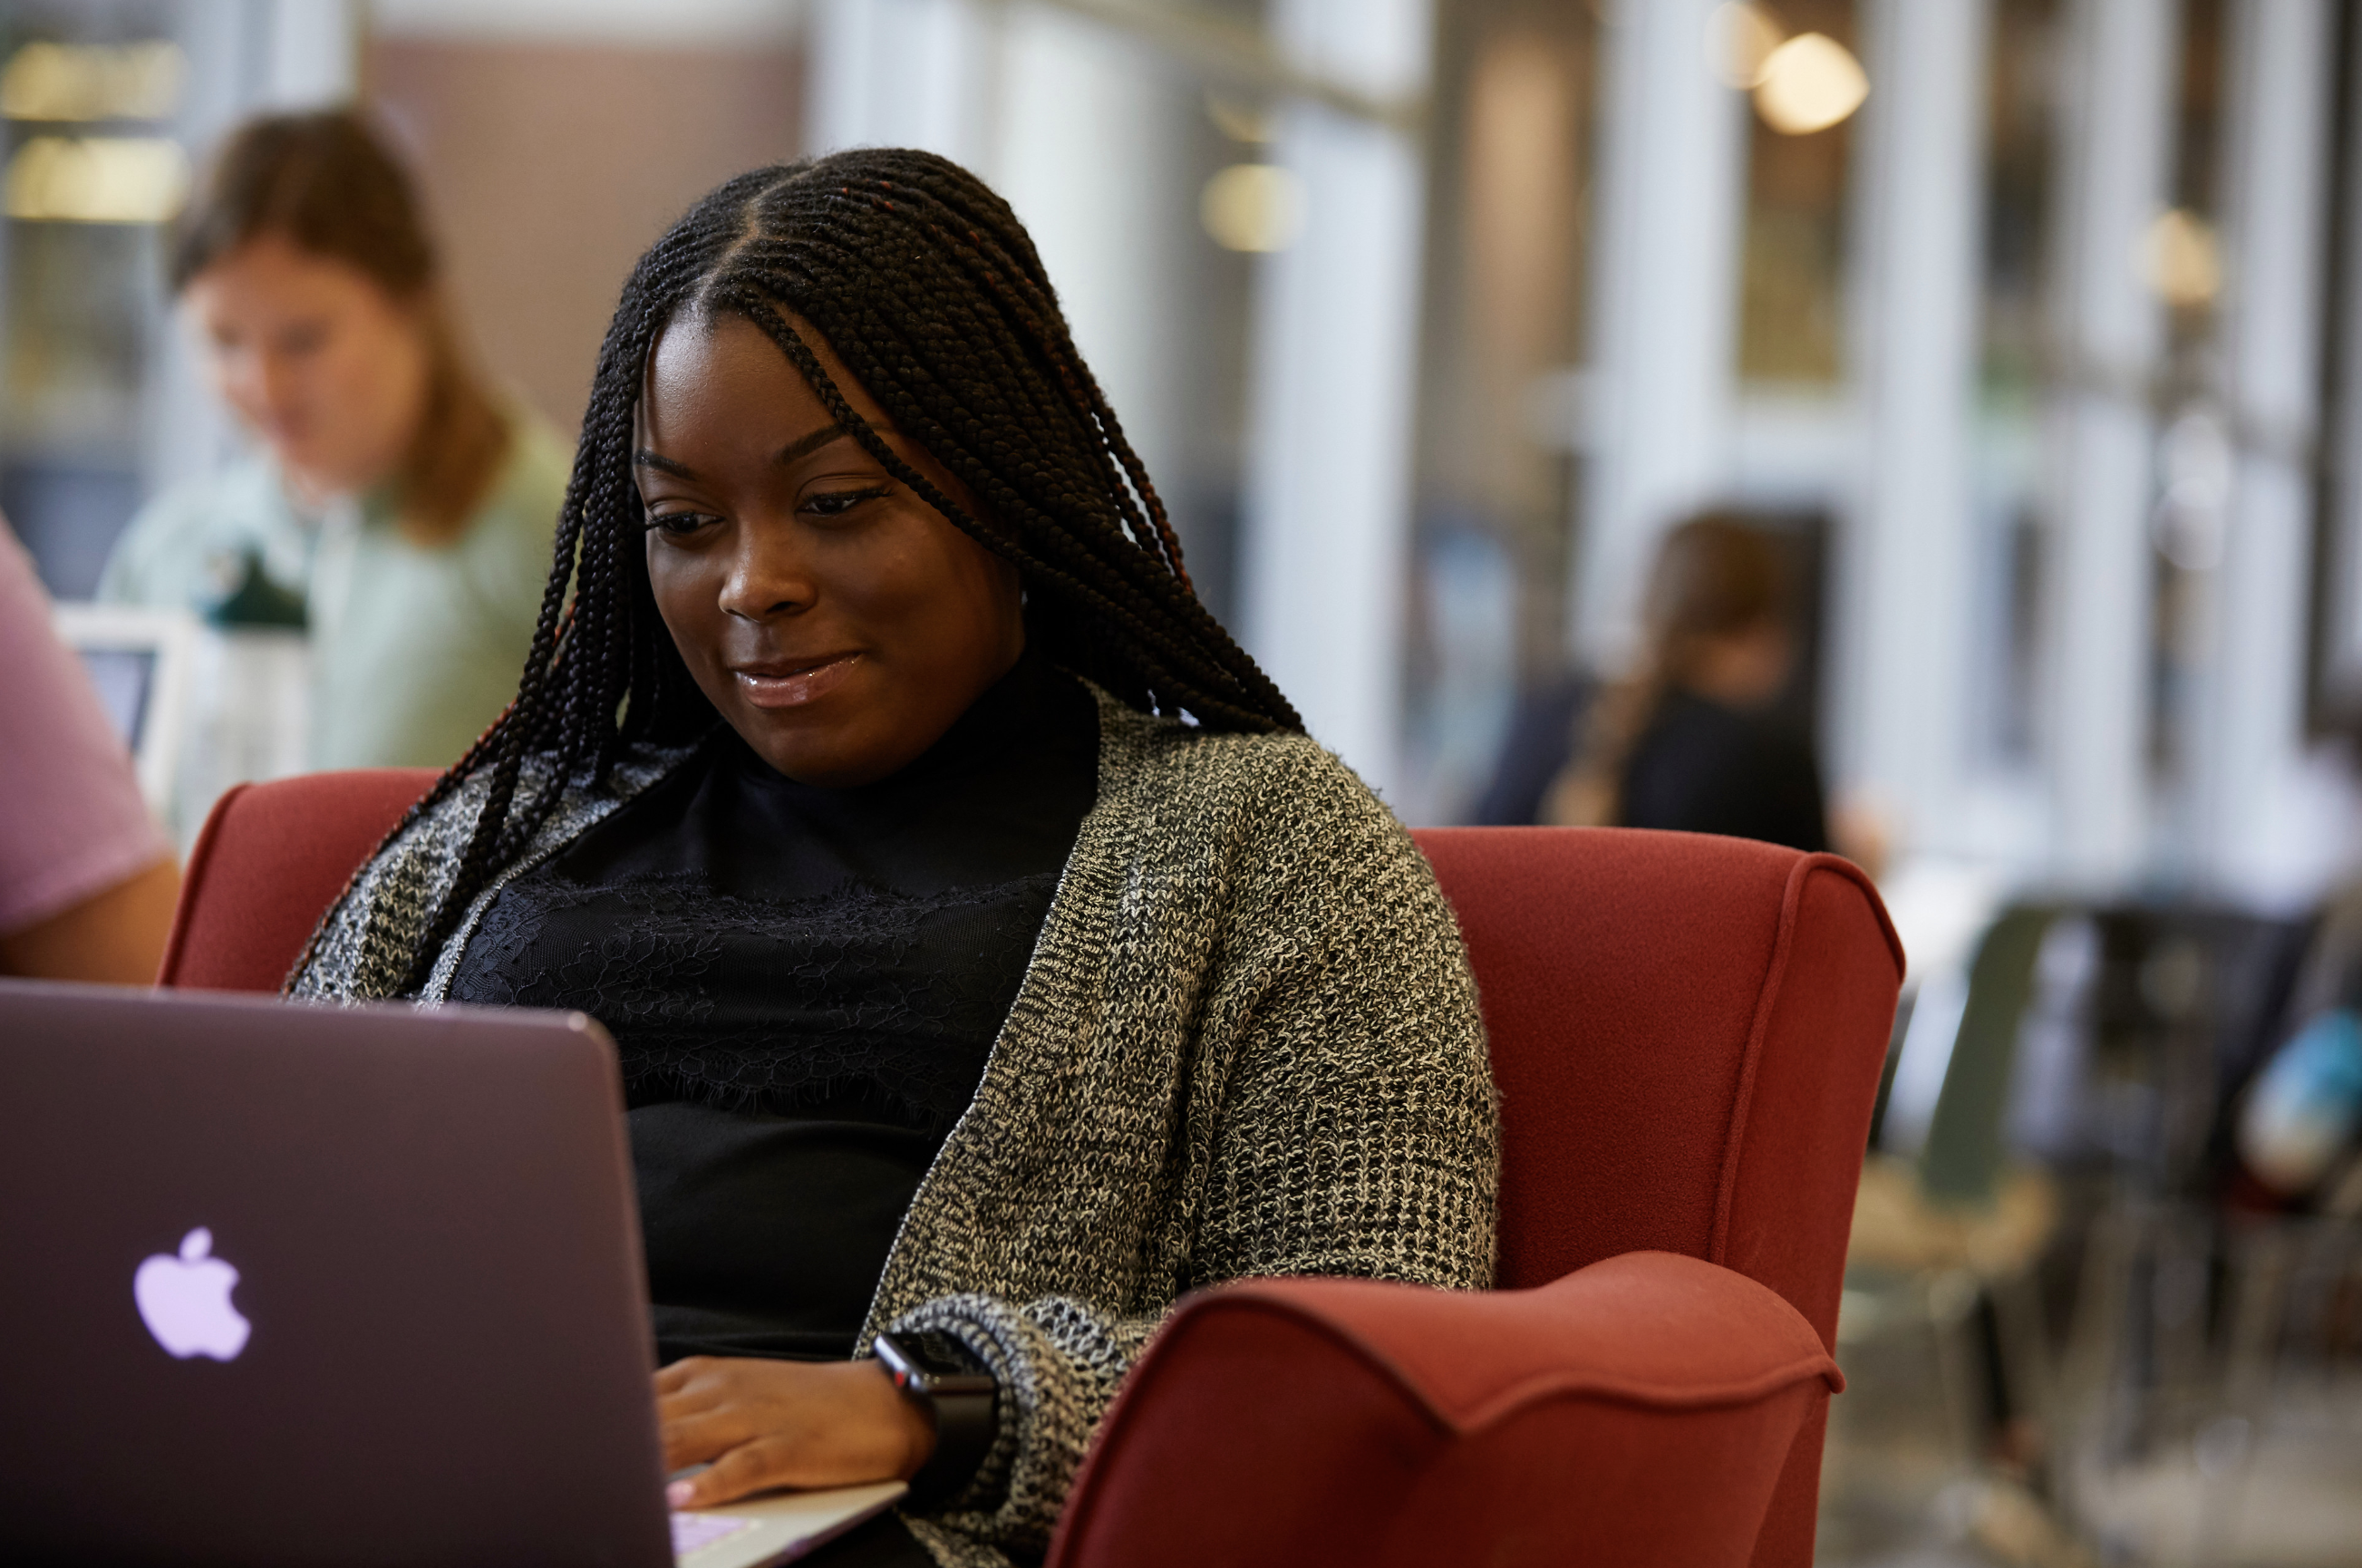 College student who identifies as female in Lewis/Clark lobby smiling at her laptop screen